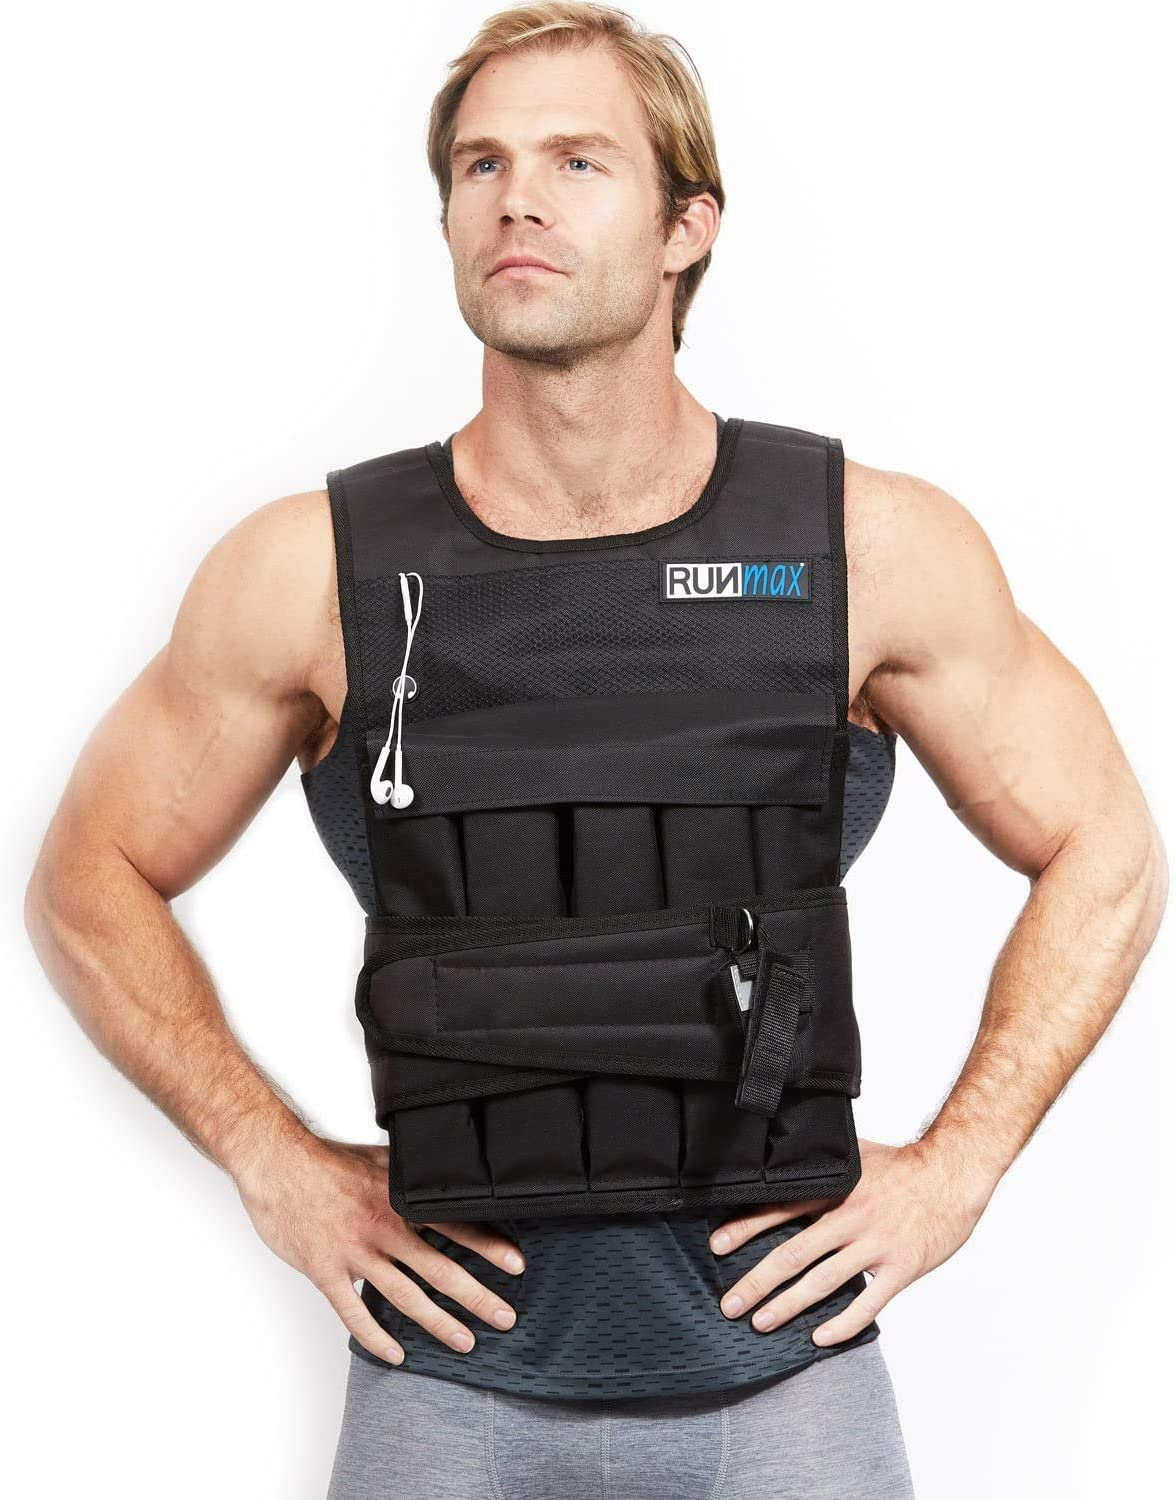 RUNFAST/Max Weighted Vest